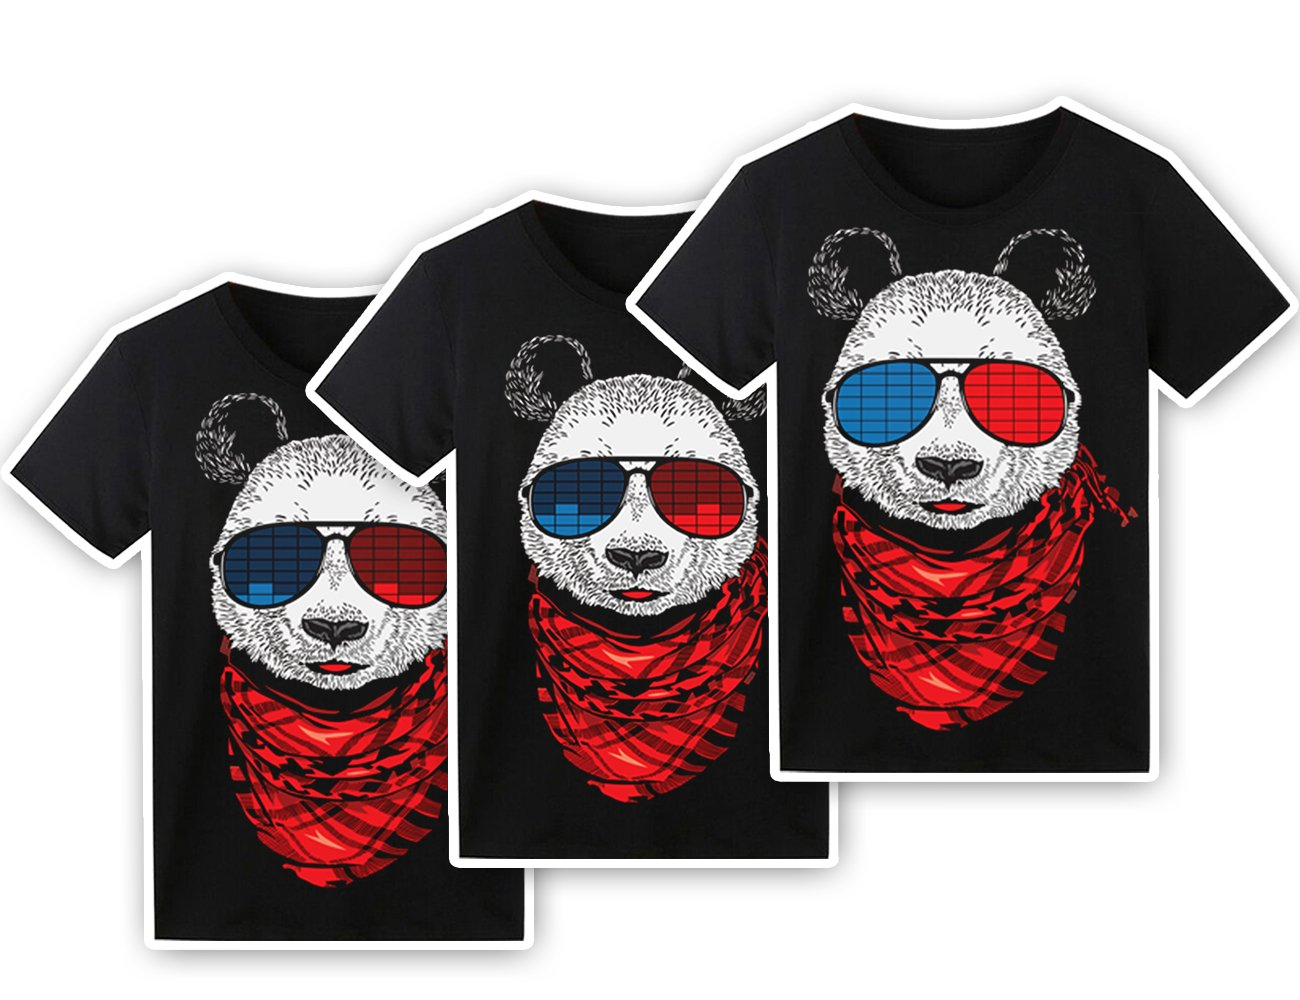 LED T Shirt Sound Activated Funny Shirts Light Up Equalizer Animation Clothes Fancy Dress for Party Hiphop Halloween Concert Cosplay Birthday Gift with Panda Design, Bonus Glow Bracelet